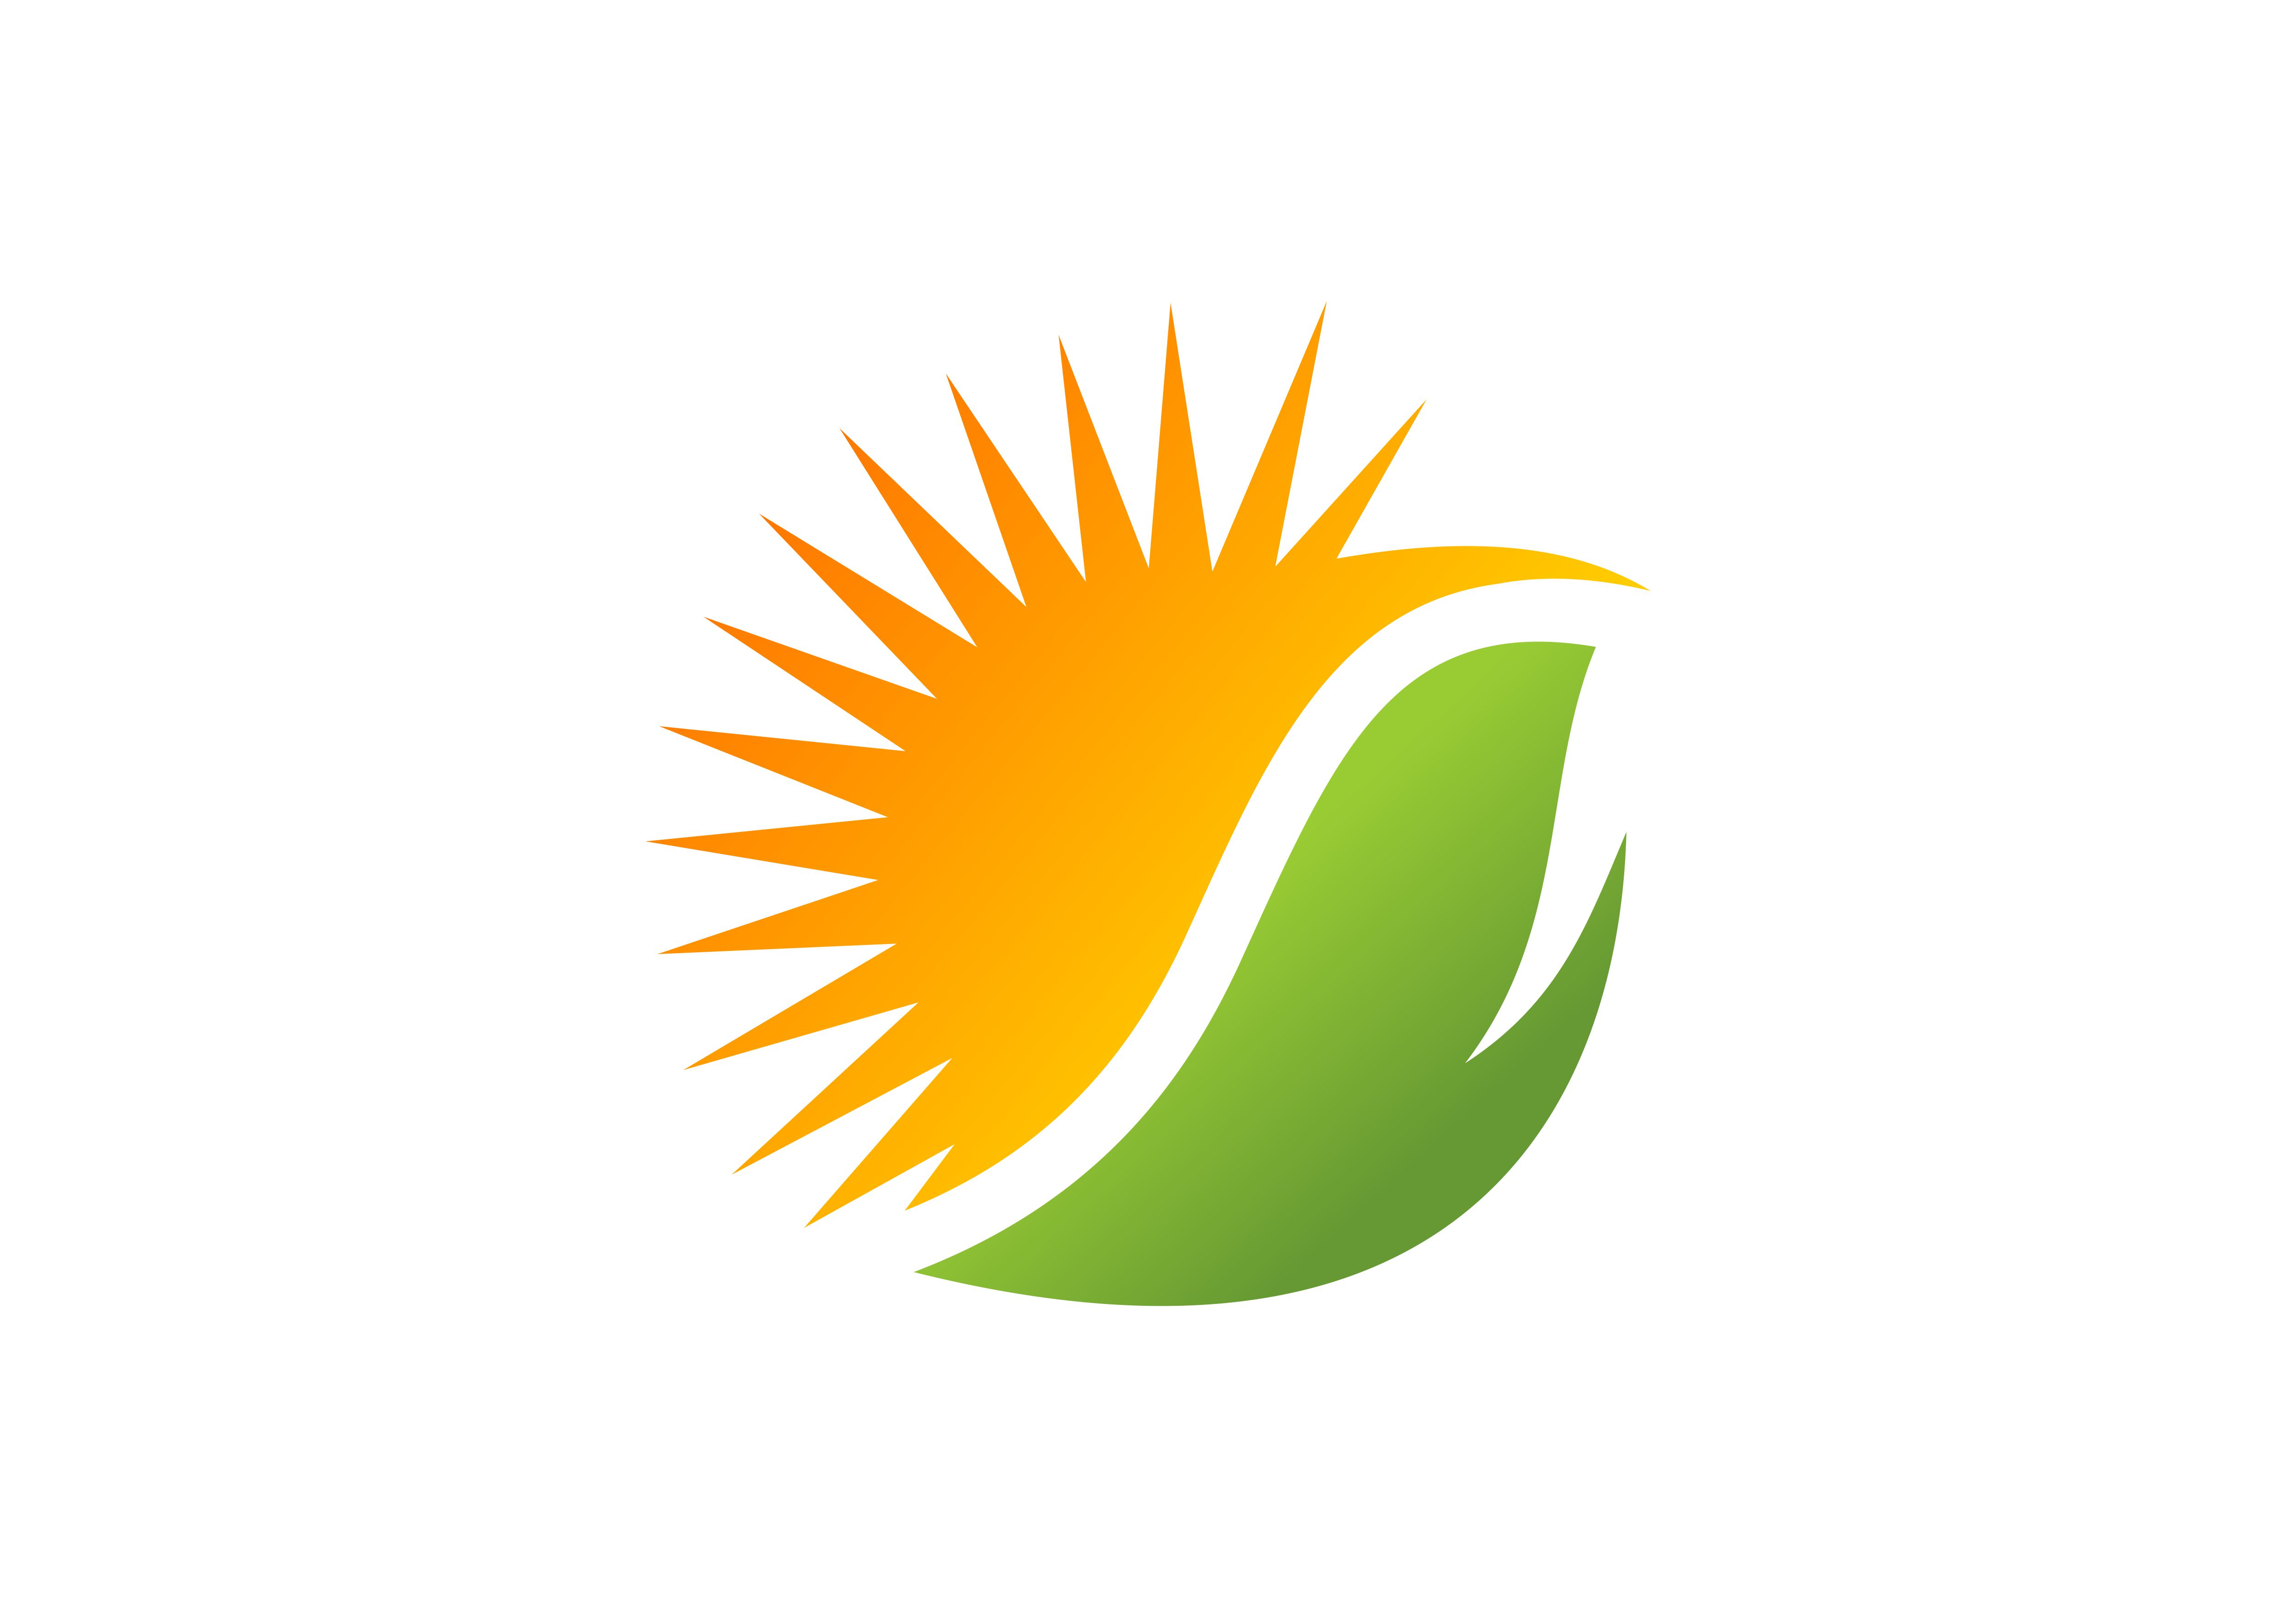 Download Free Solar Energy Logo Graphic By Deemka Studio Creative Fabrica for Cricut Explore, Silhouette and other cutting machines.